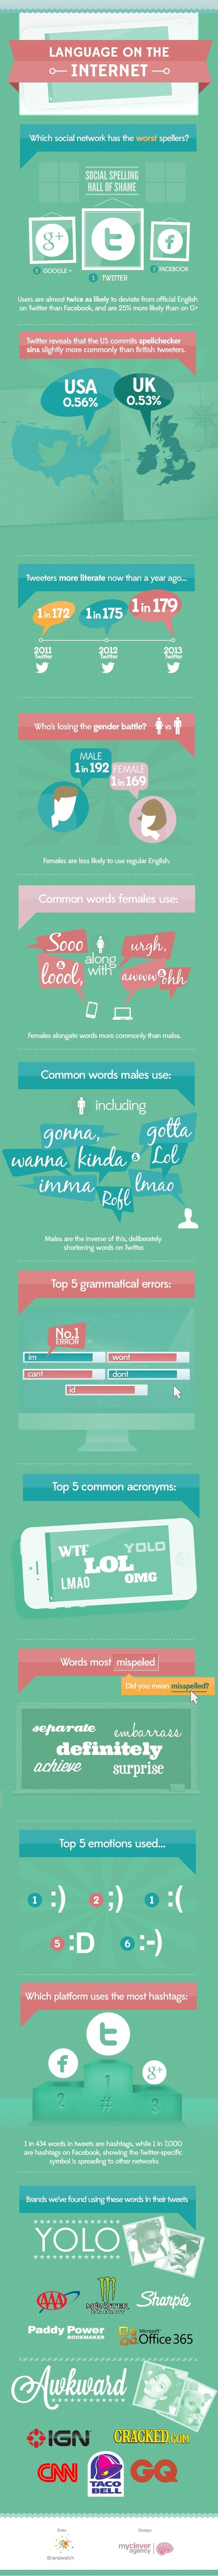 Infographic: Commonly misspelled words on Twitter, Facebook and G+ | CrowdSourcing InfoGraphics | Scoop.it